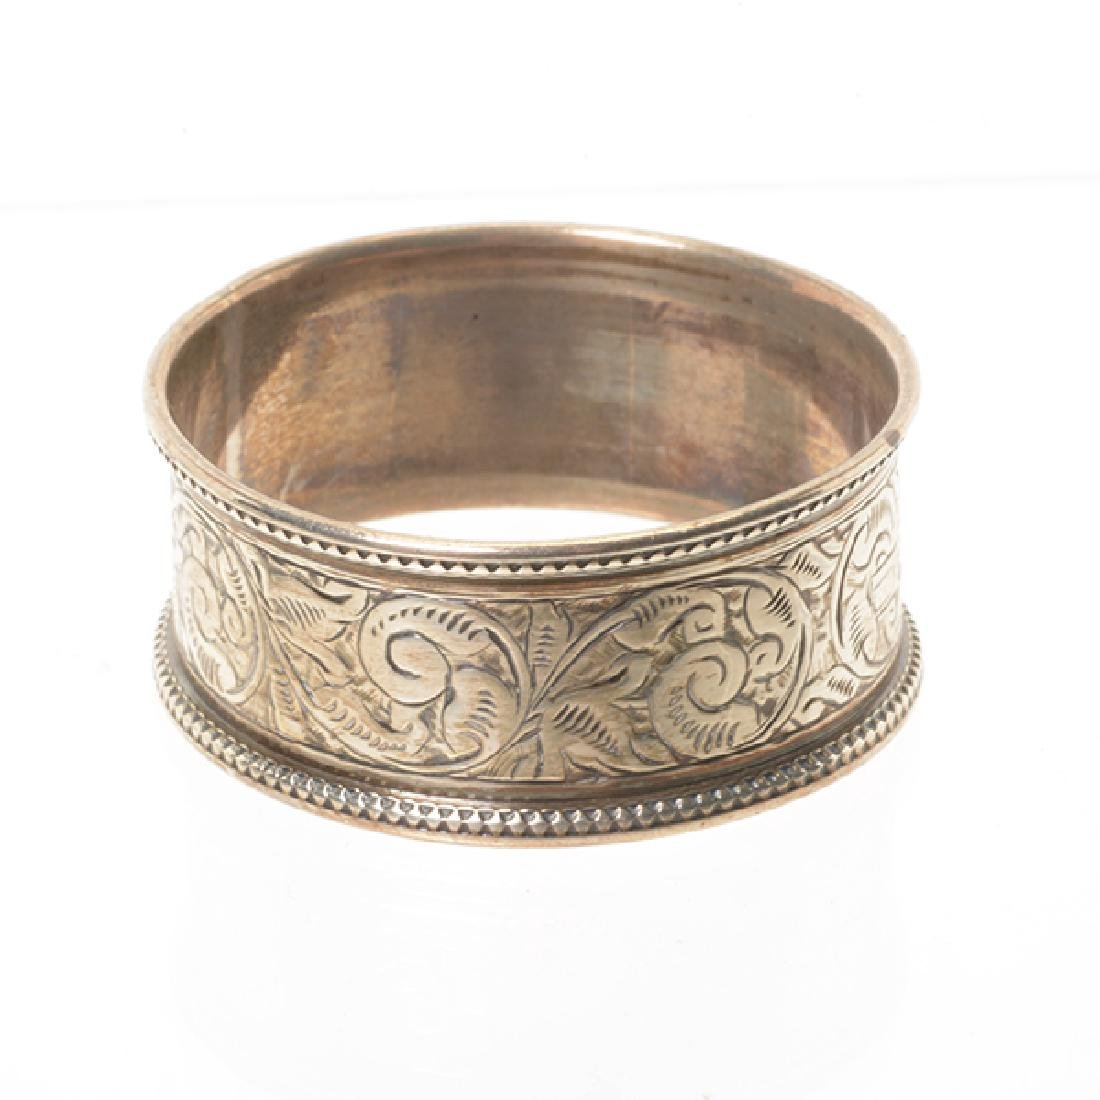 Eleven English Sterling Napkin Rings and Rococo Style - 4